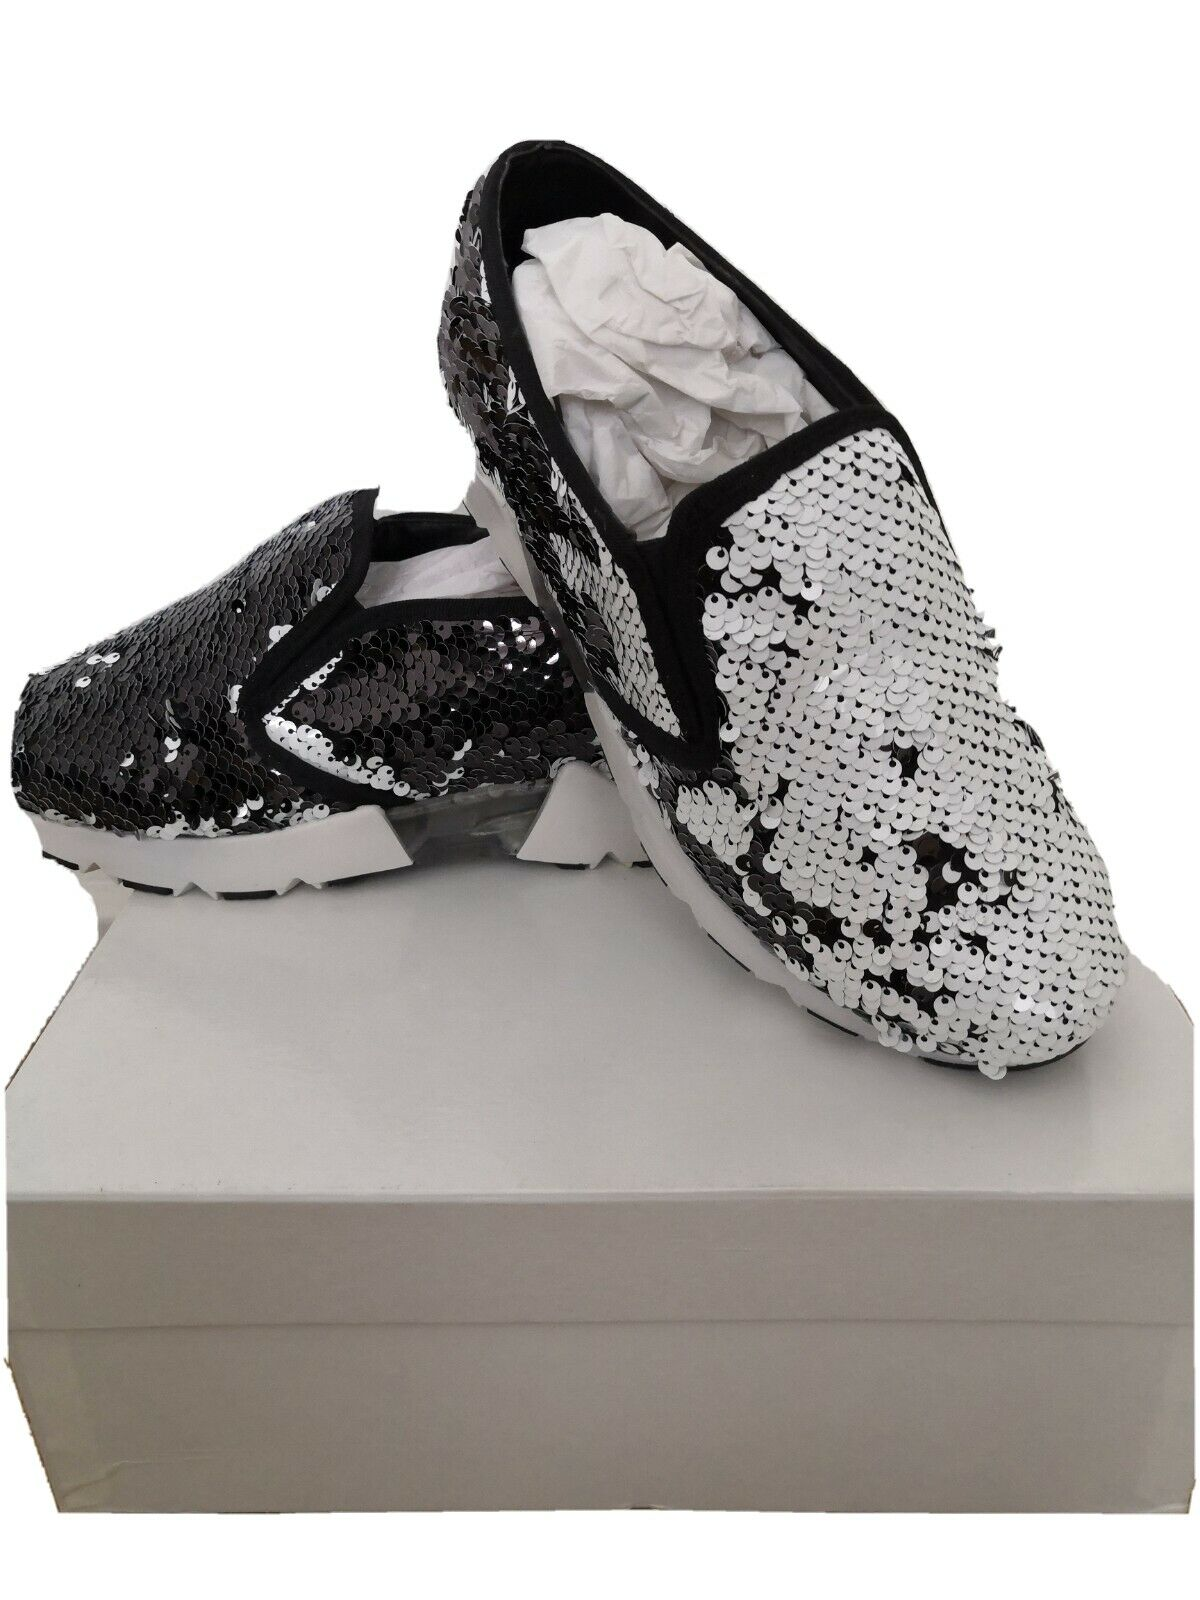 Reversable black and white sneackers size 4 Made in Italy